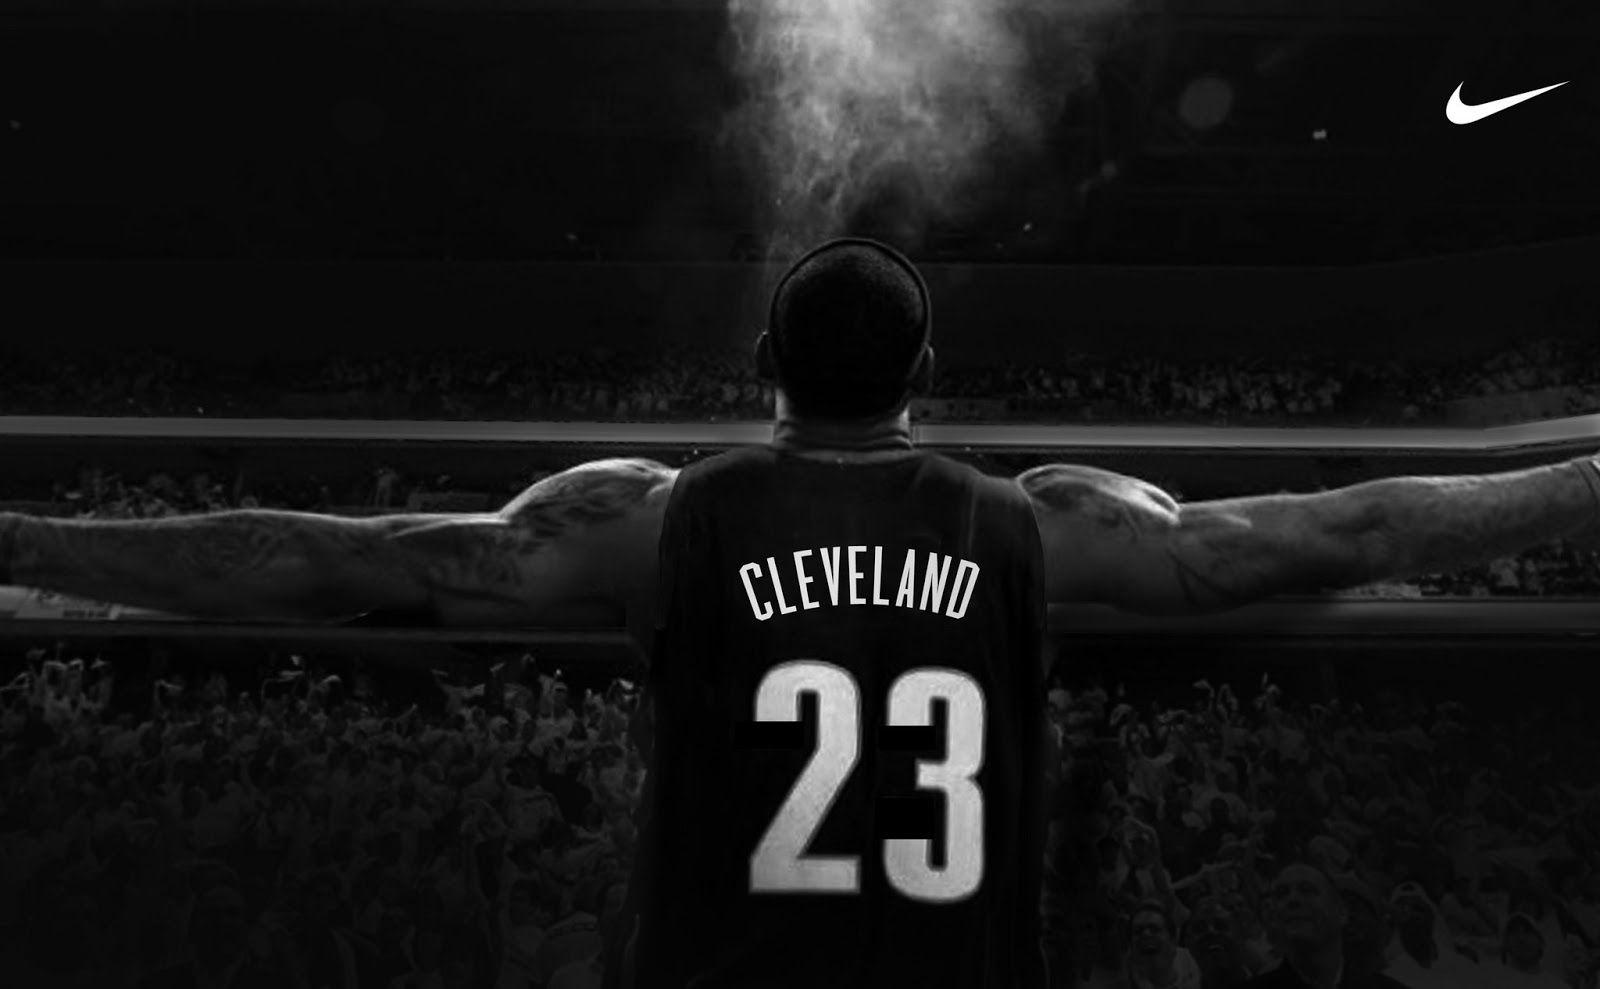 Lebron James HD Wallpaper. KING James | Free Full HD Walpapers and ...